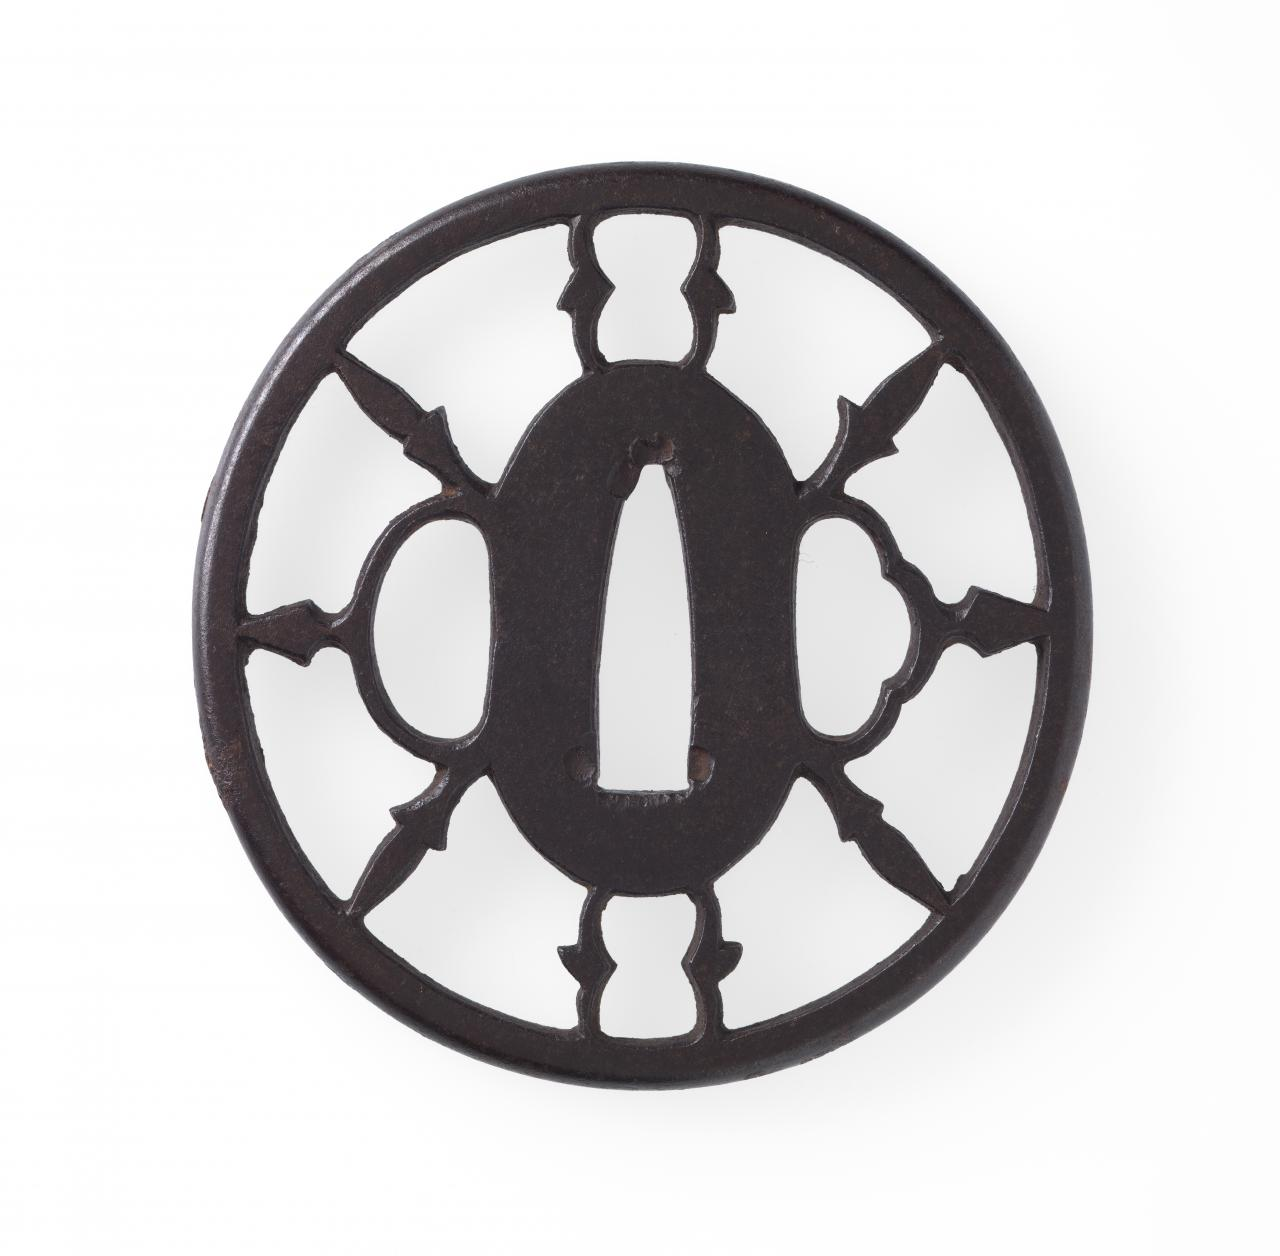 Sword guard with flying plover and geometric design